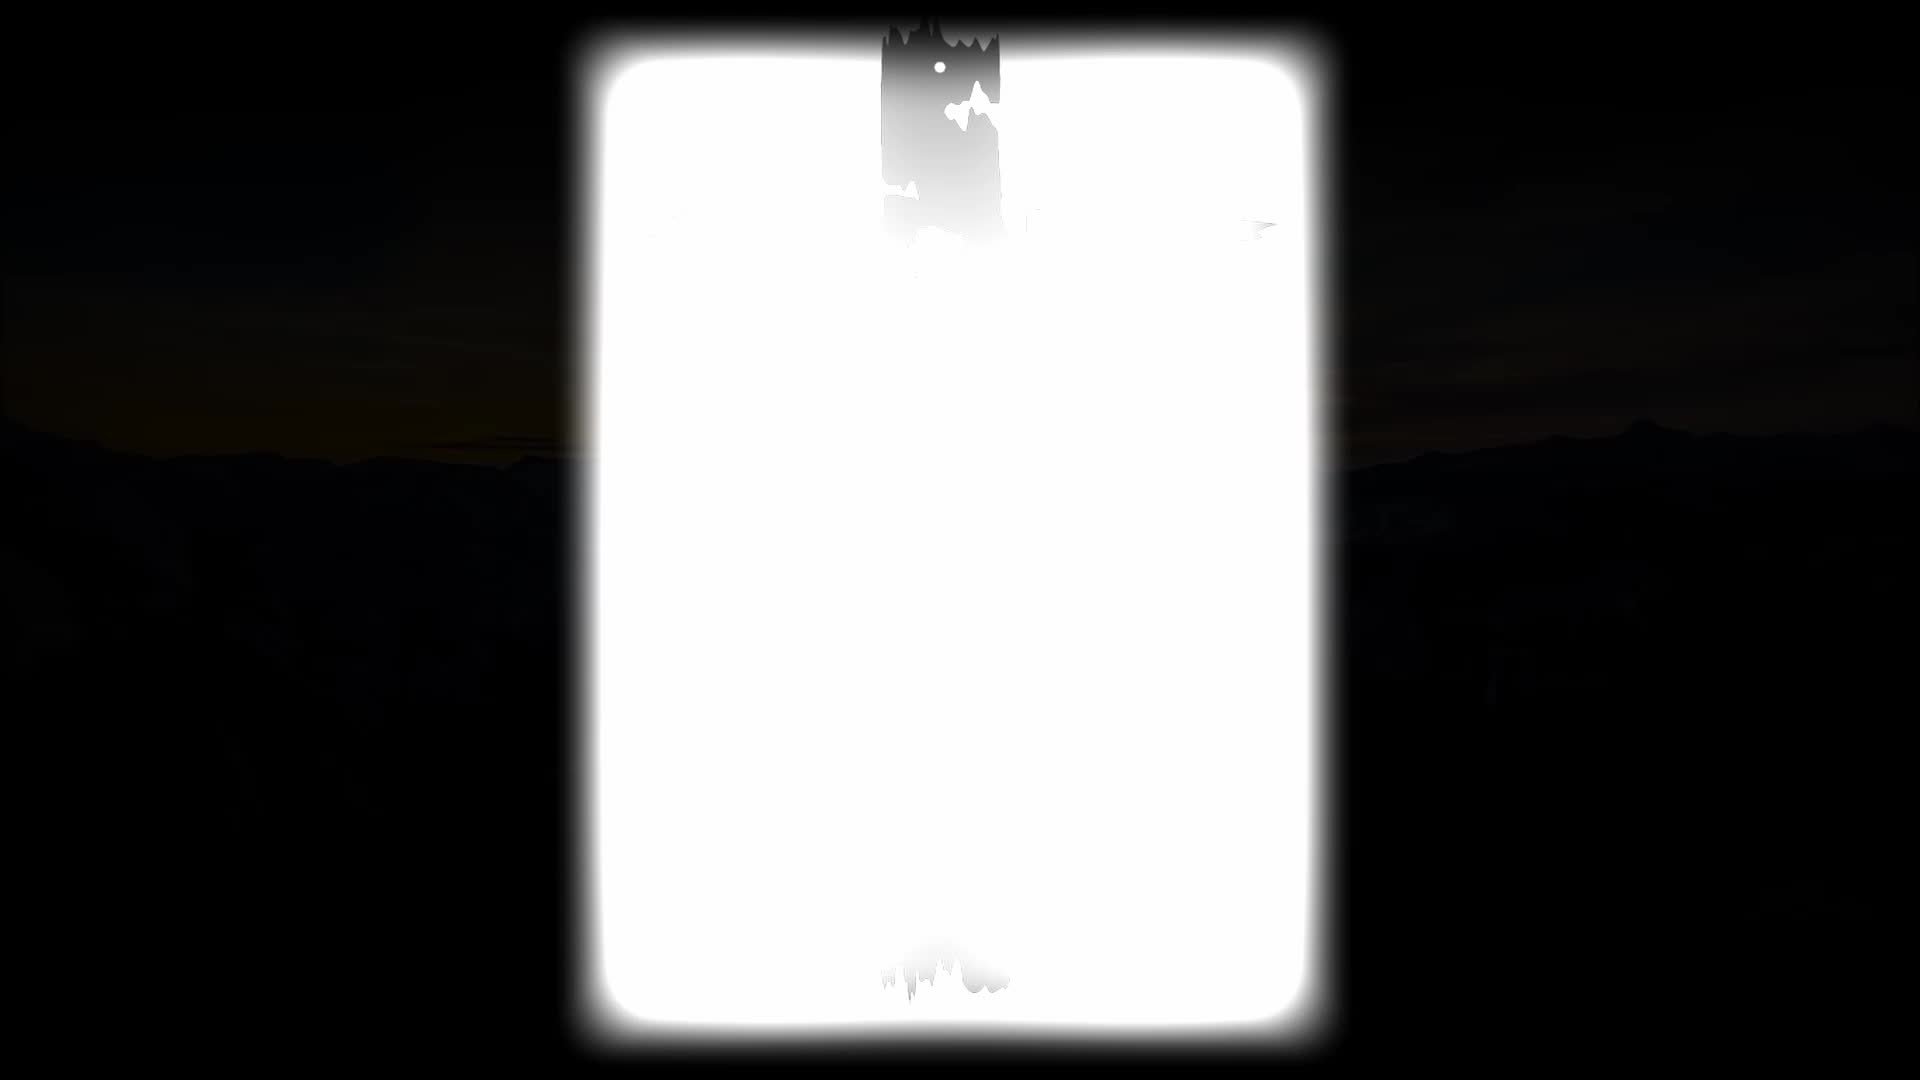 Roosevelt Betrays America by Dr Robert Ley Read by The Fascifist